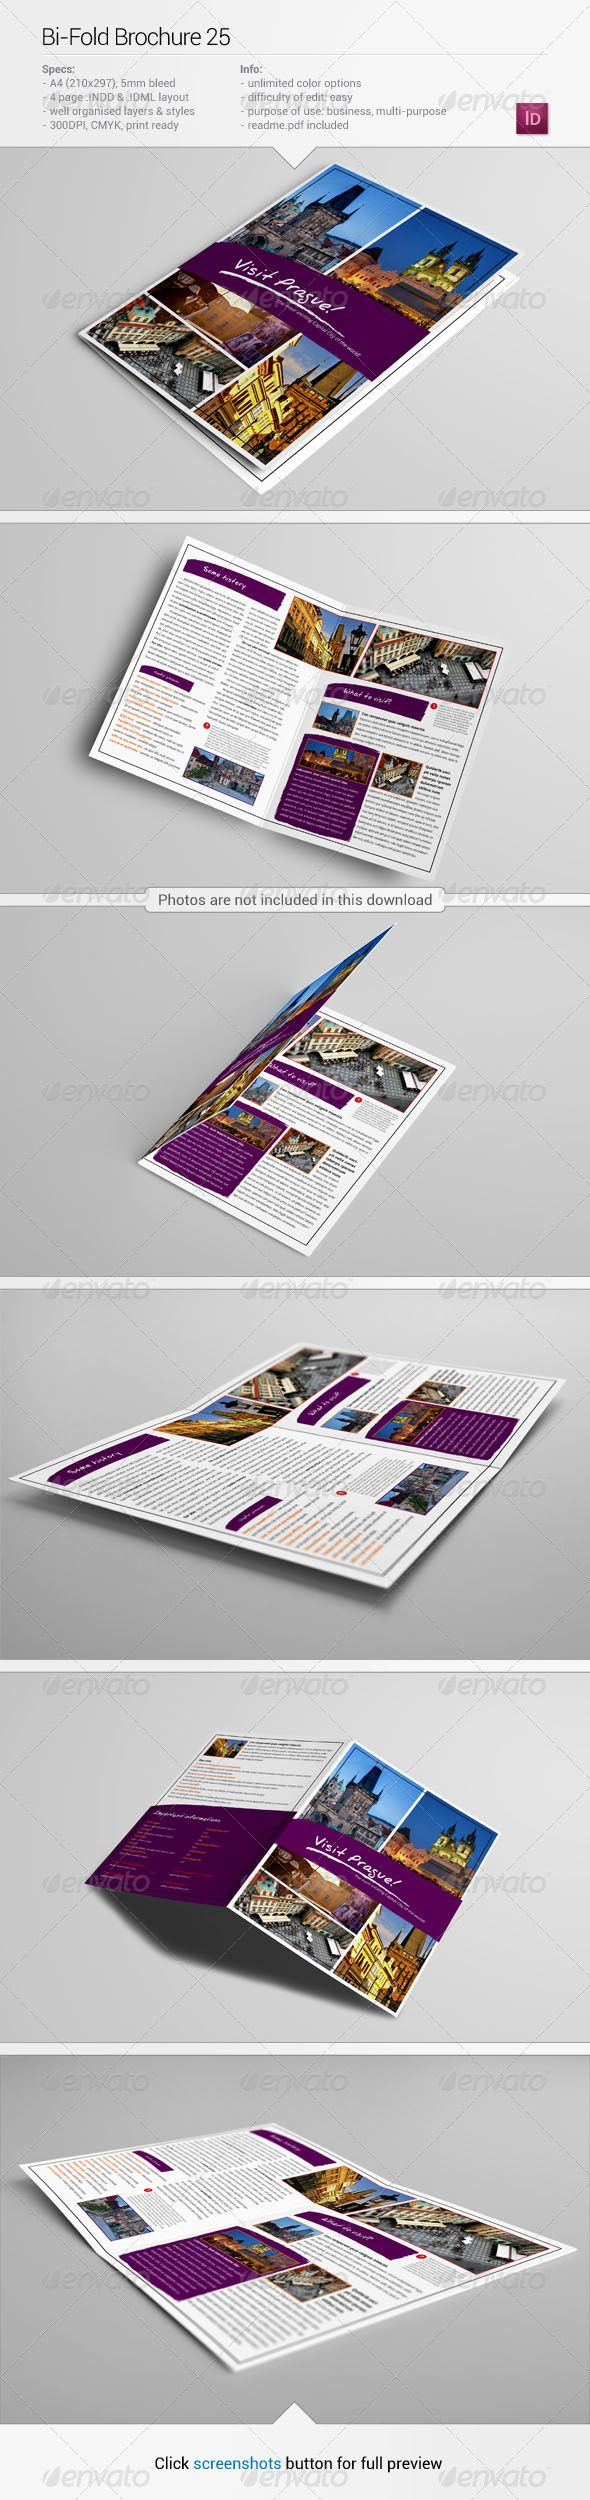 Bi-Fold Brochure 25 #GraphicRiver About this item Description: Tourism and travel bi-fold brochure template. Perfect as a sightseeing guide or travel pamphlet. There are 5 easy things you can do with this brochure: pick your own colors, any colors, upload your own photos, change fonts, easily edit vector elements, prepare this brochure as you wish.   If you have any questions or a problem with any of my files don't hesistate to contact me via my GraphicRiver profile